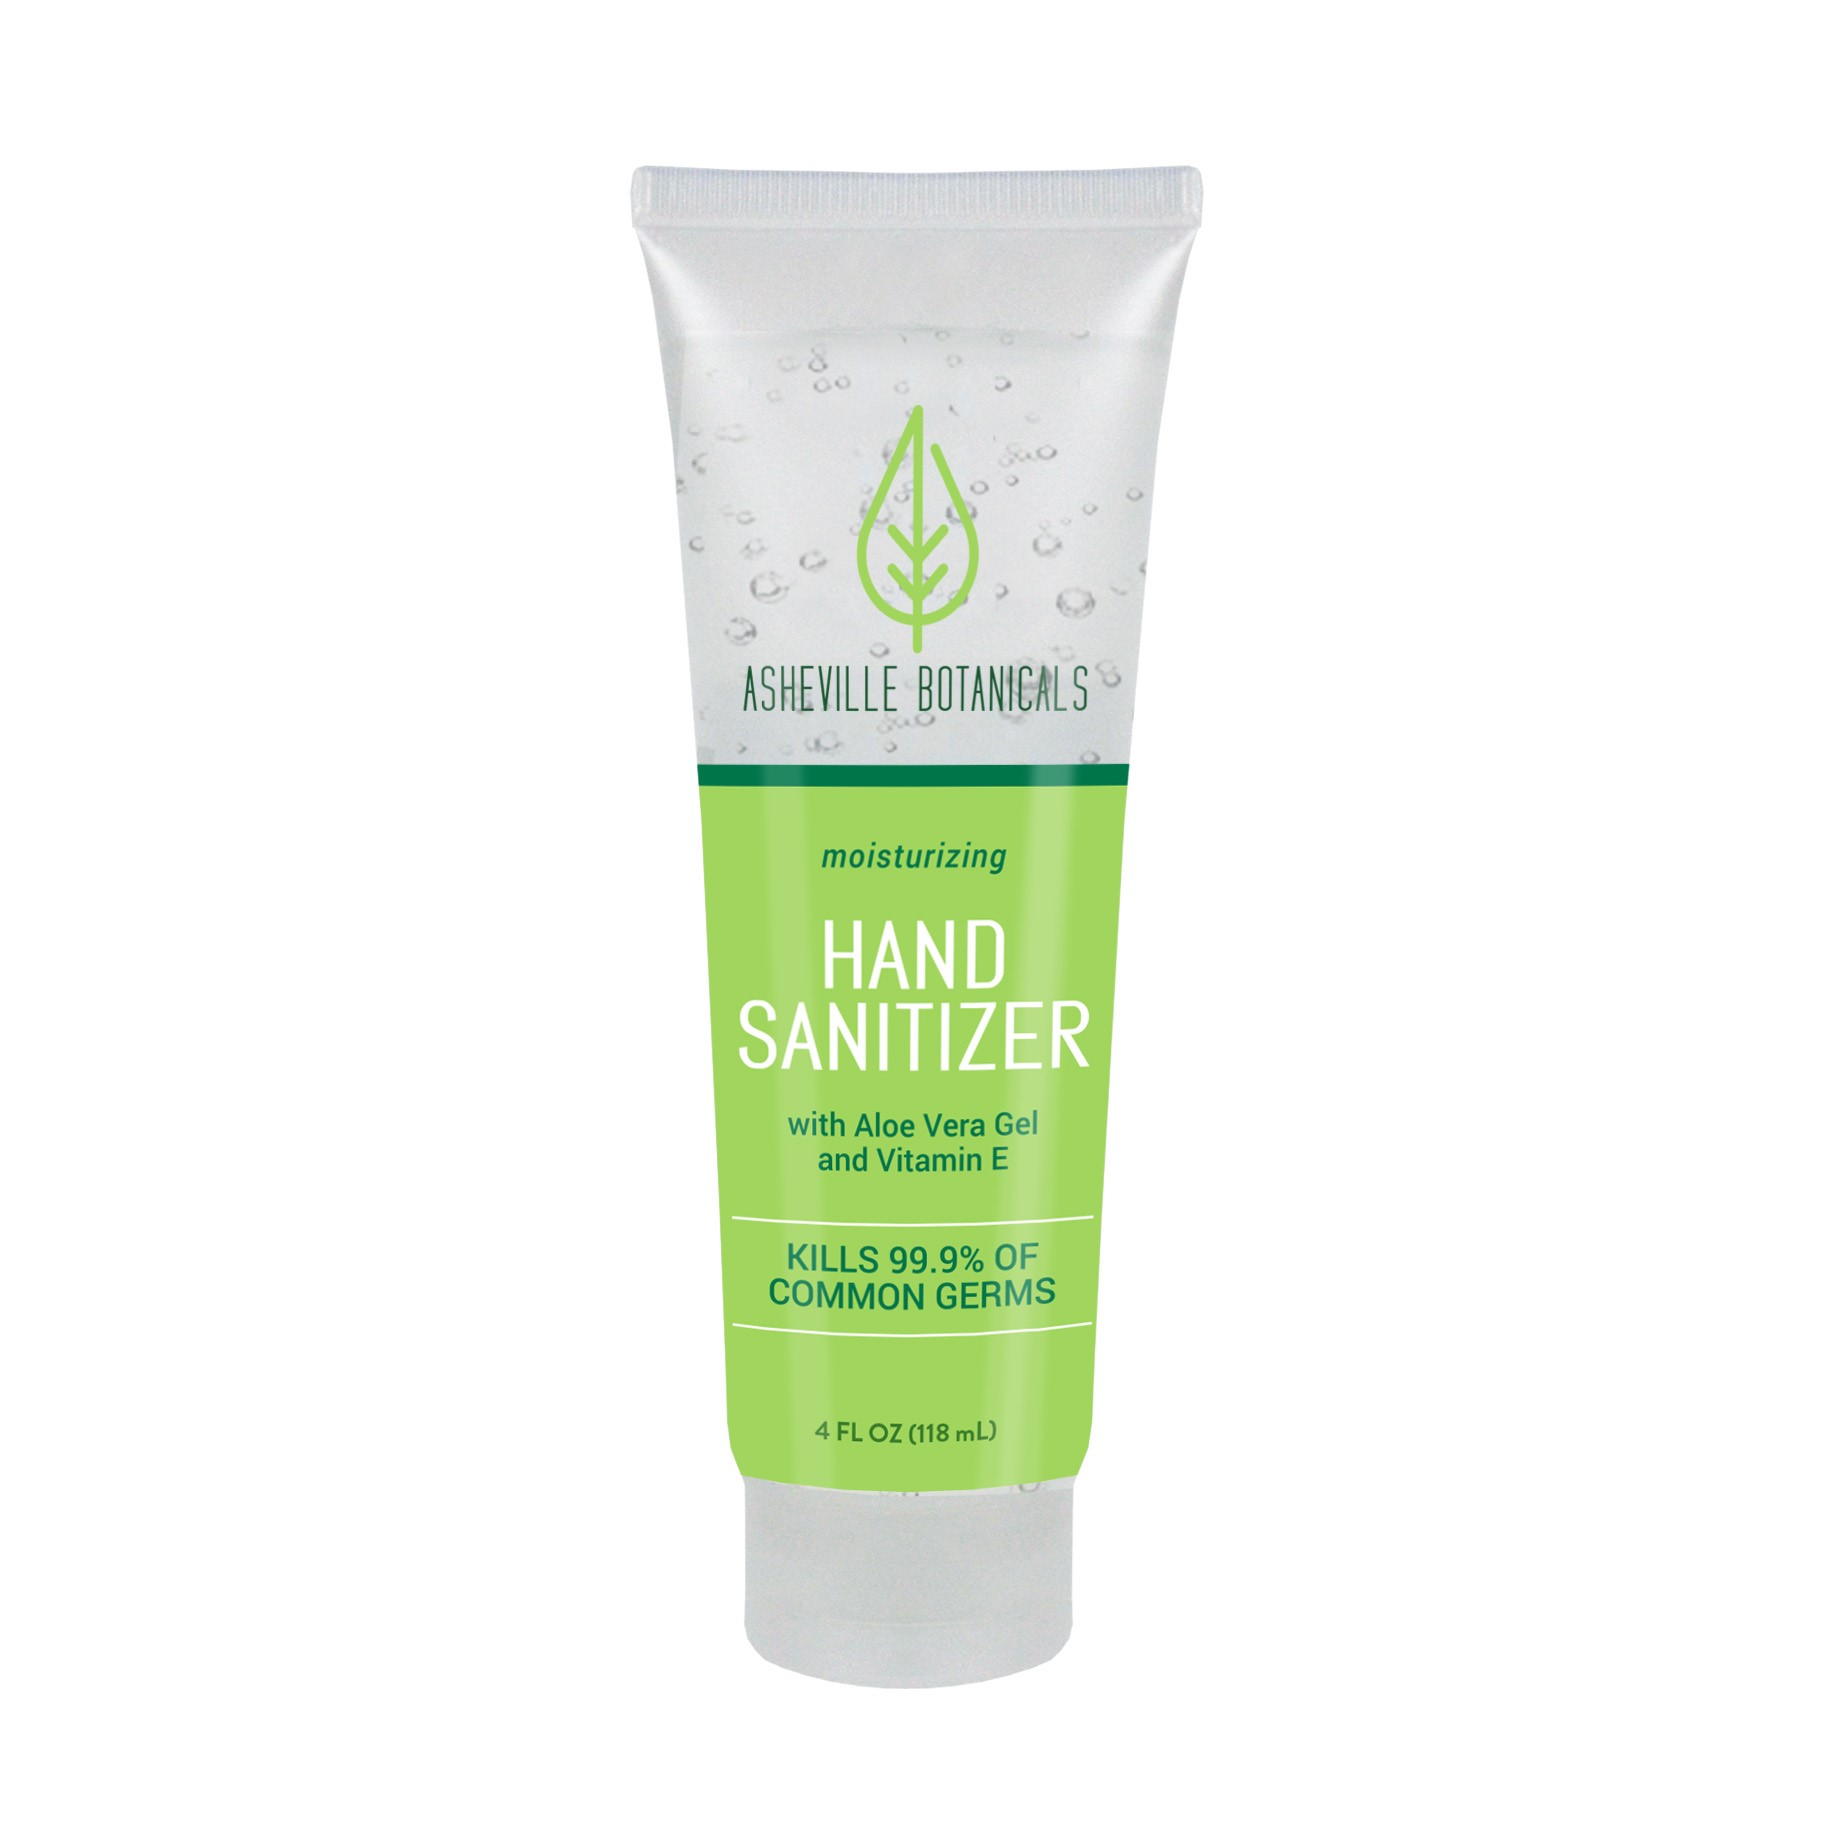 Asheville Botanicals Hand Sanitizer, 4 oz Tube